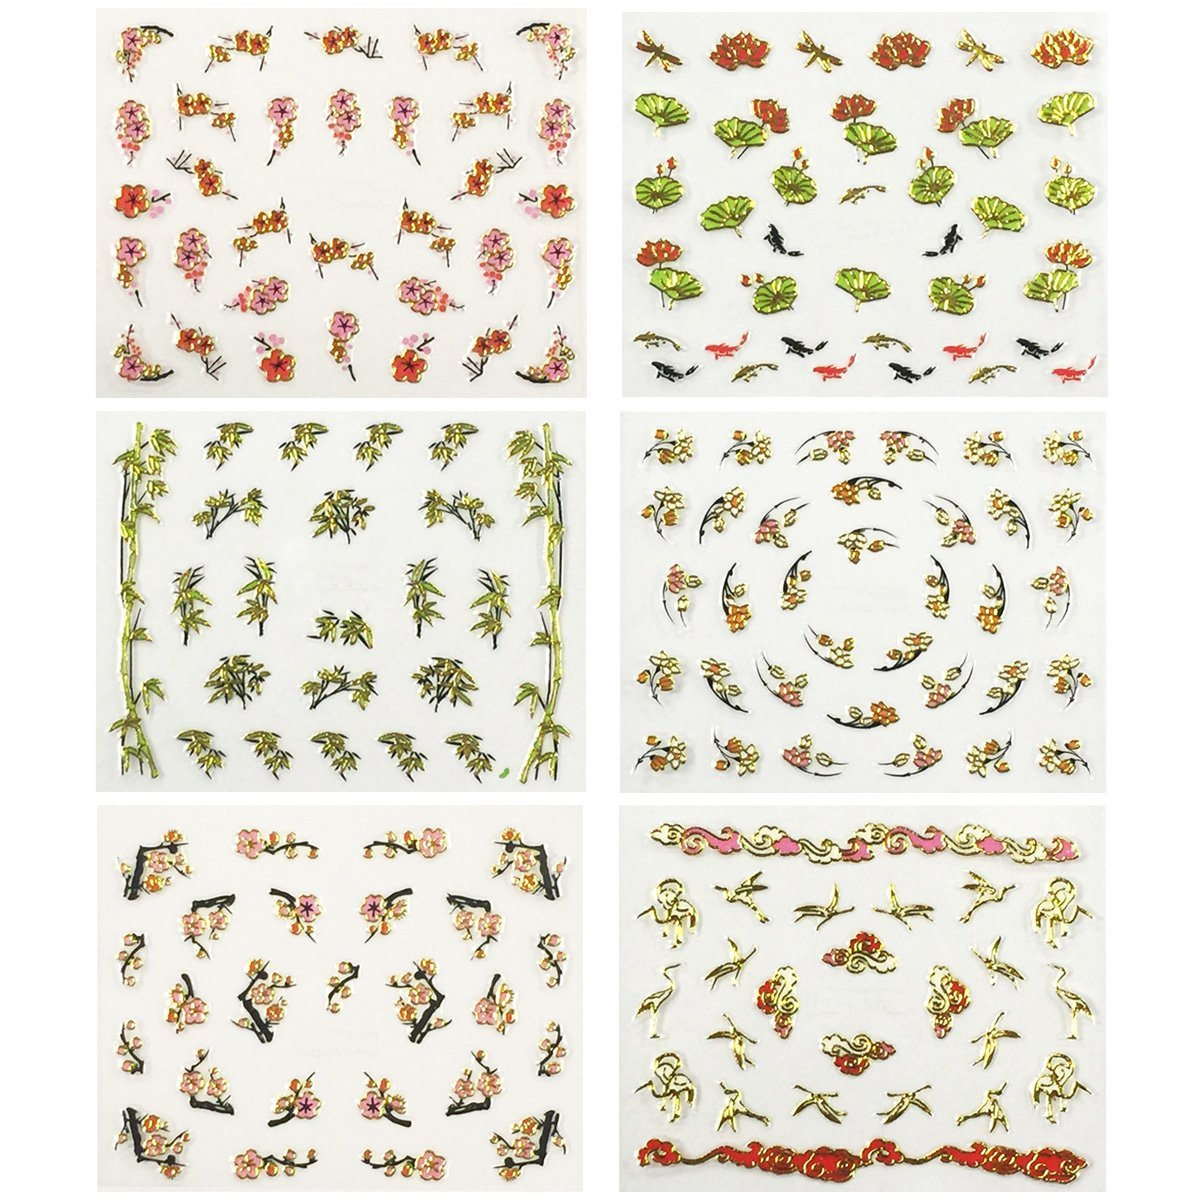 Wrapables Asian Inspired Nail Art Self-Adhesive Stickers Nail Decals, Set of 6